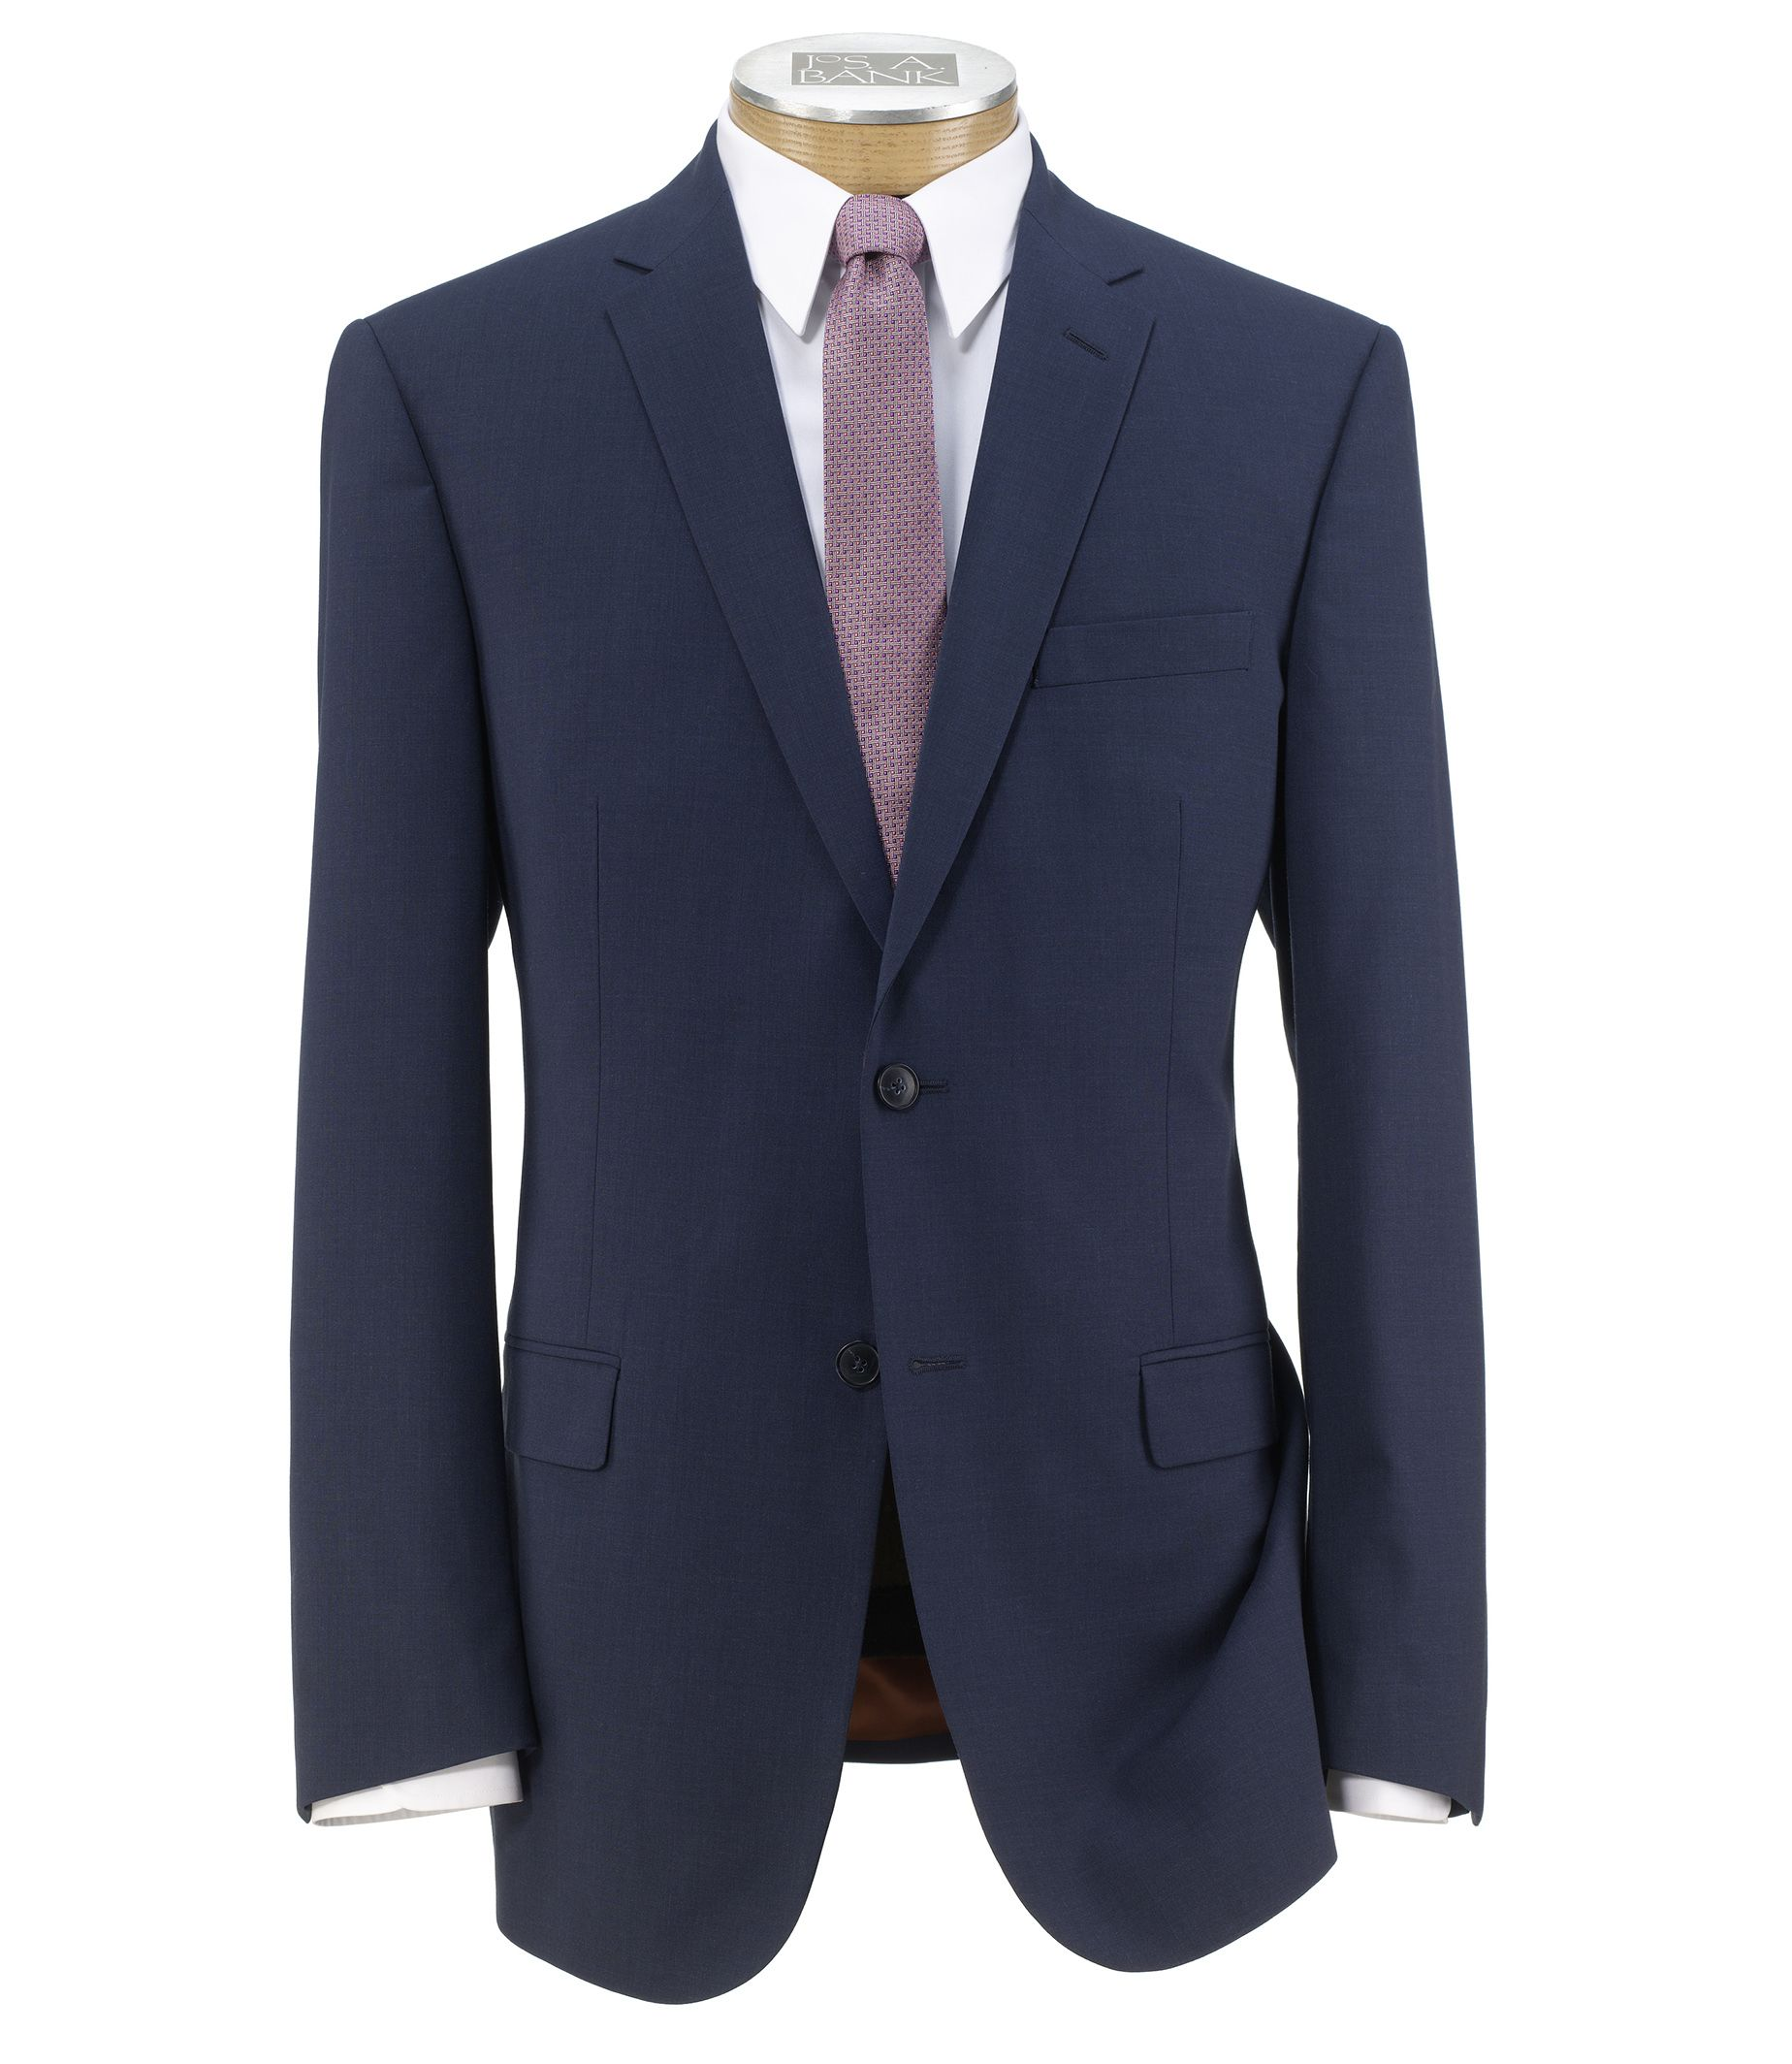 Men's Suits Sale | Current Clothing Deals & Promotions | JoS. A. Bank